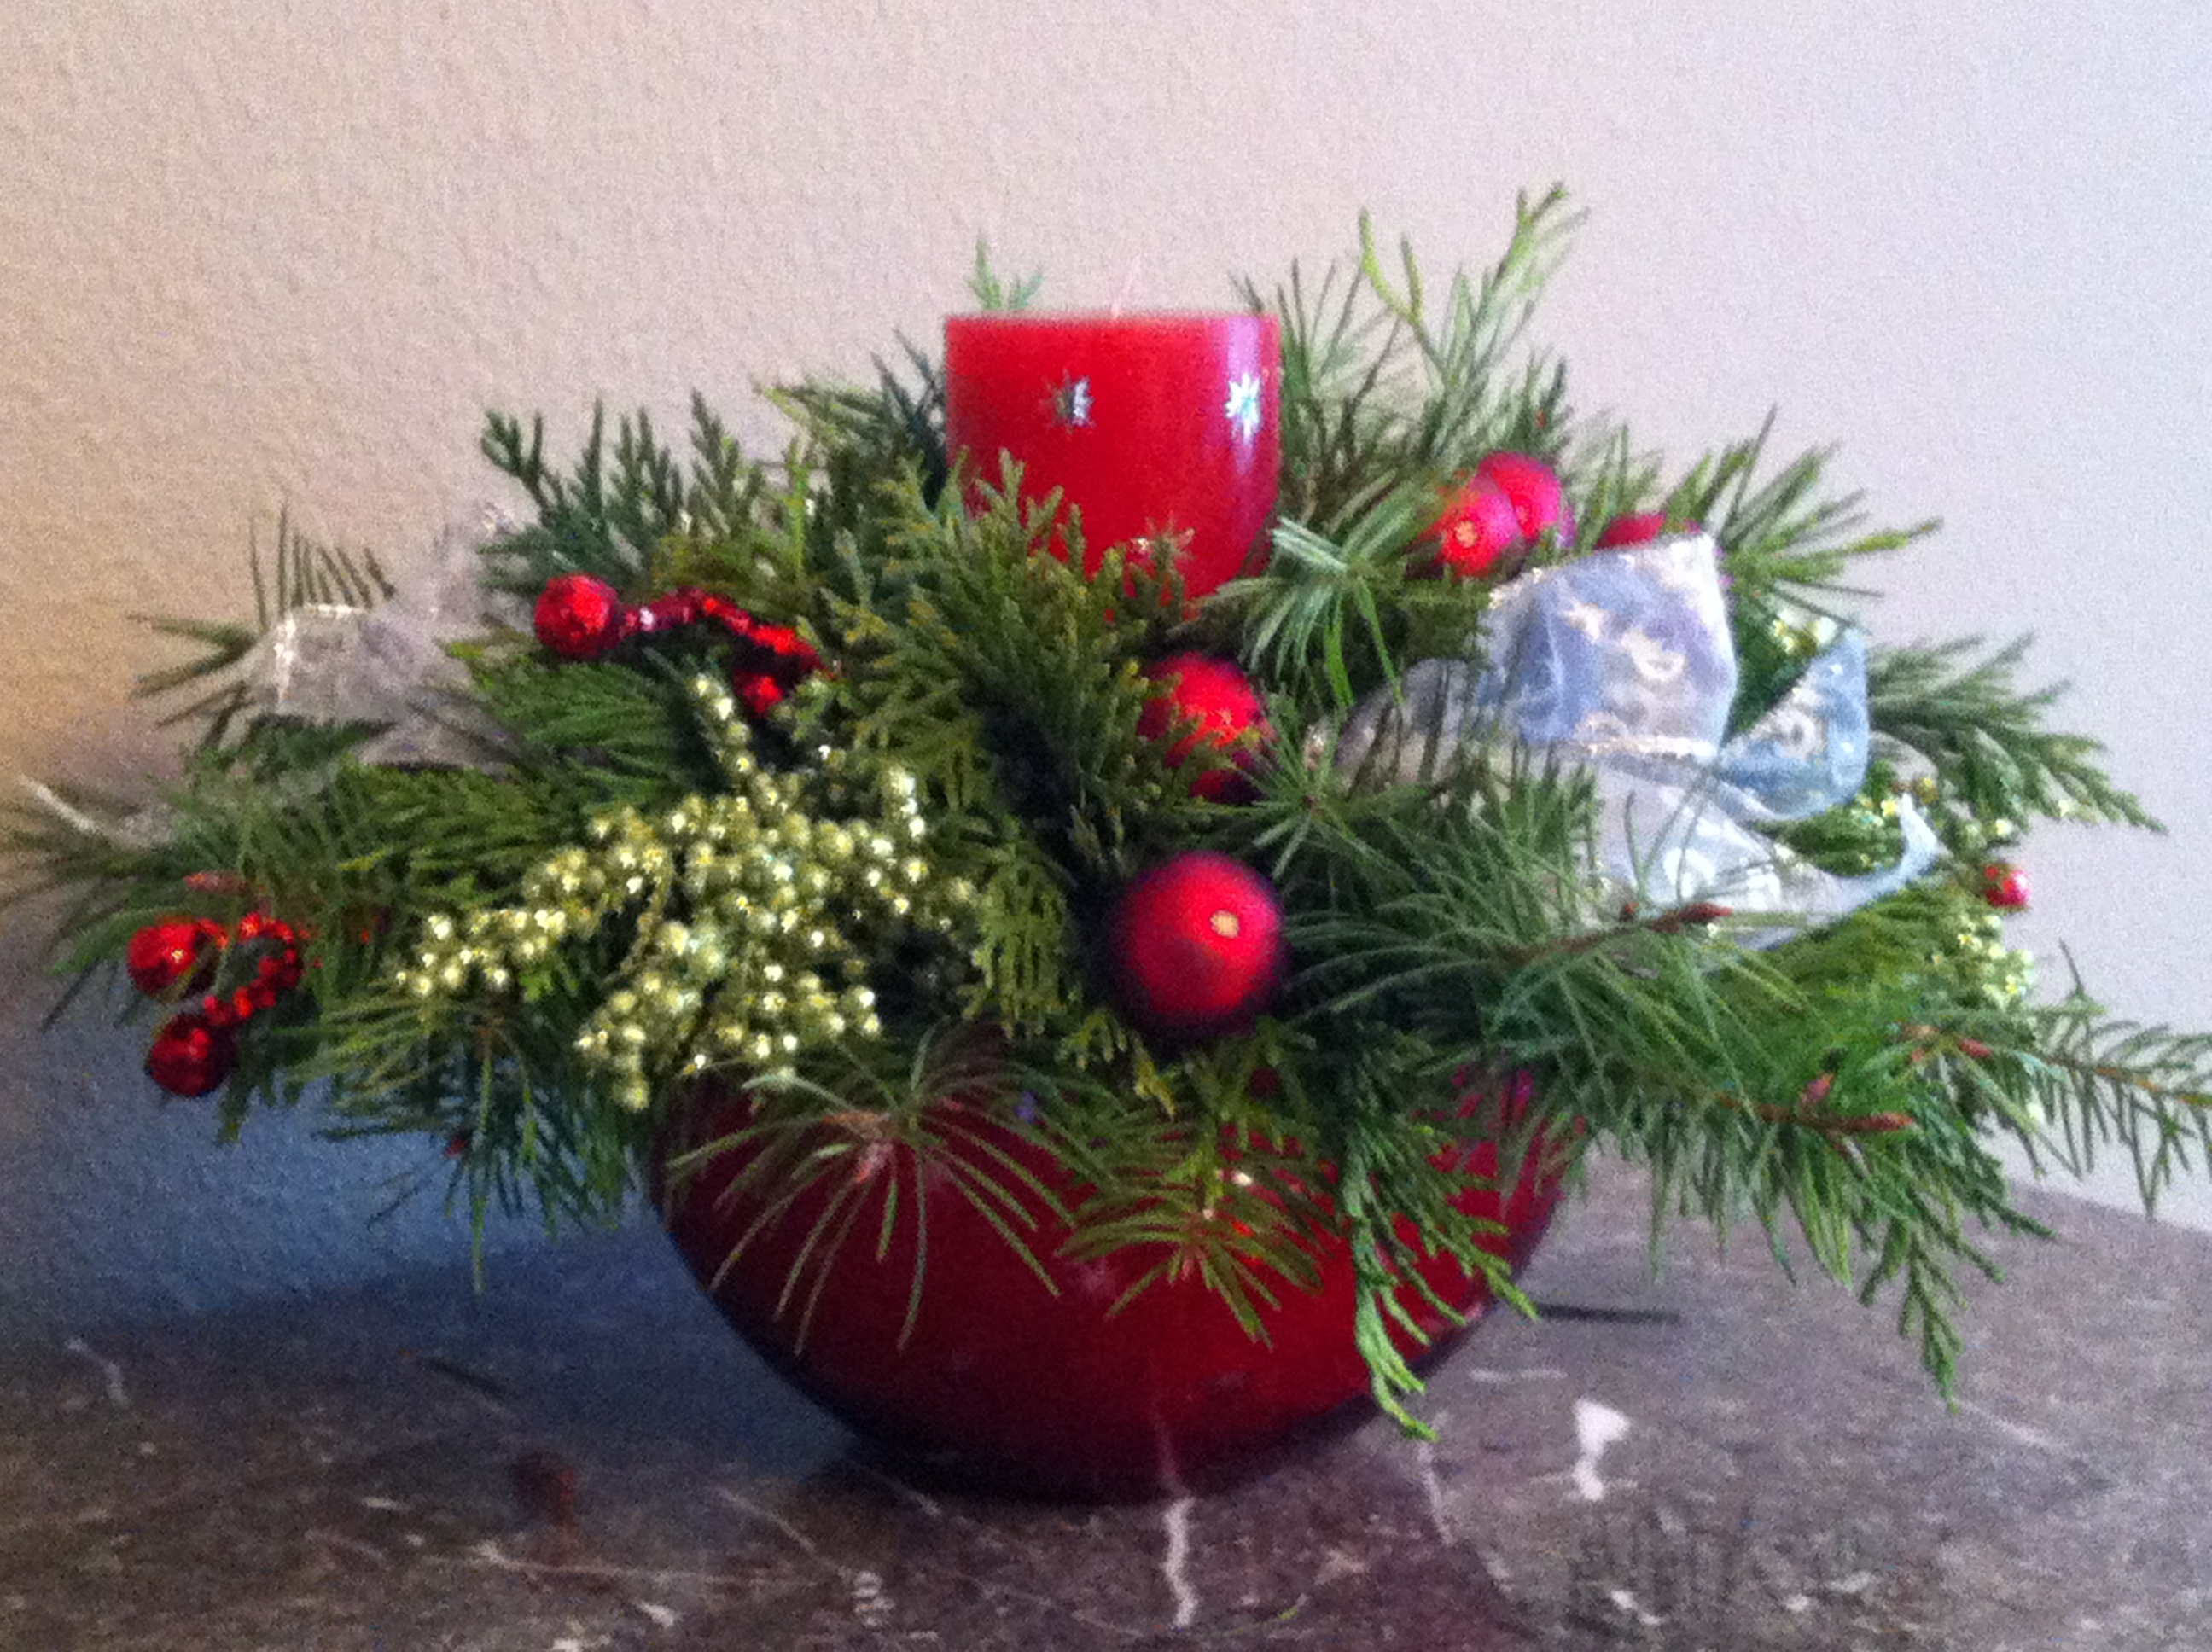 Homemade Holiday: Make Your Own Christmas Centerpiece